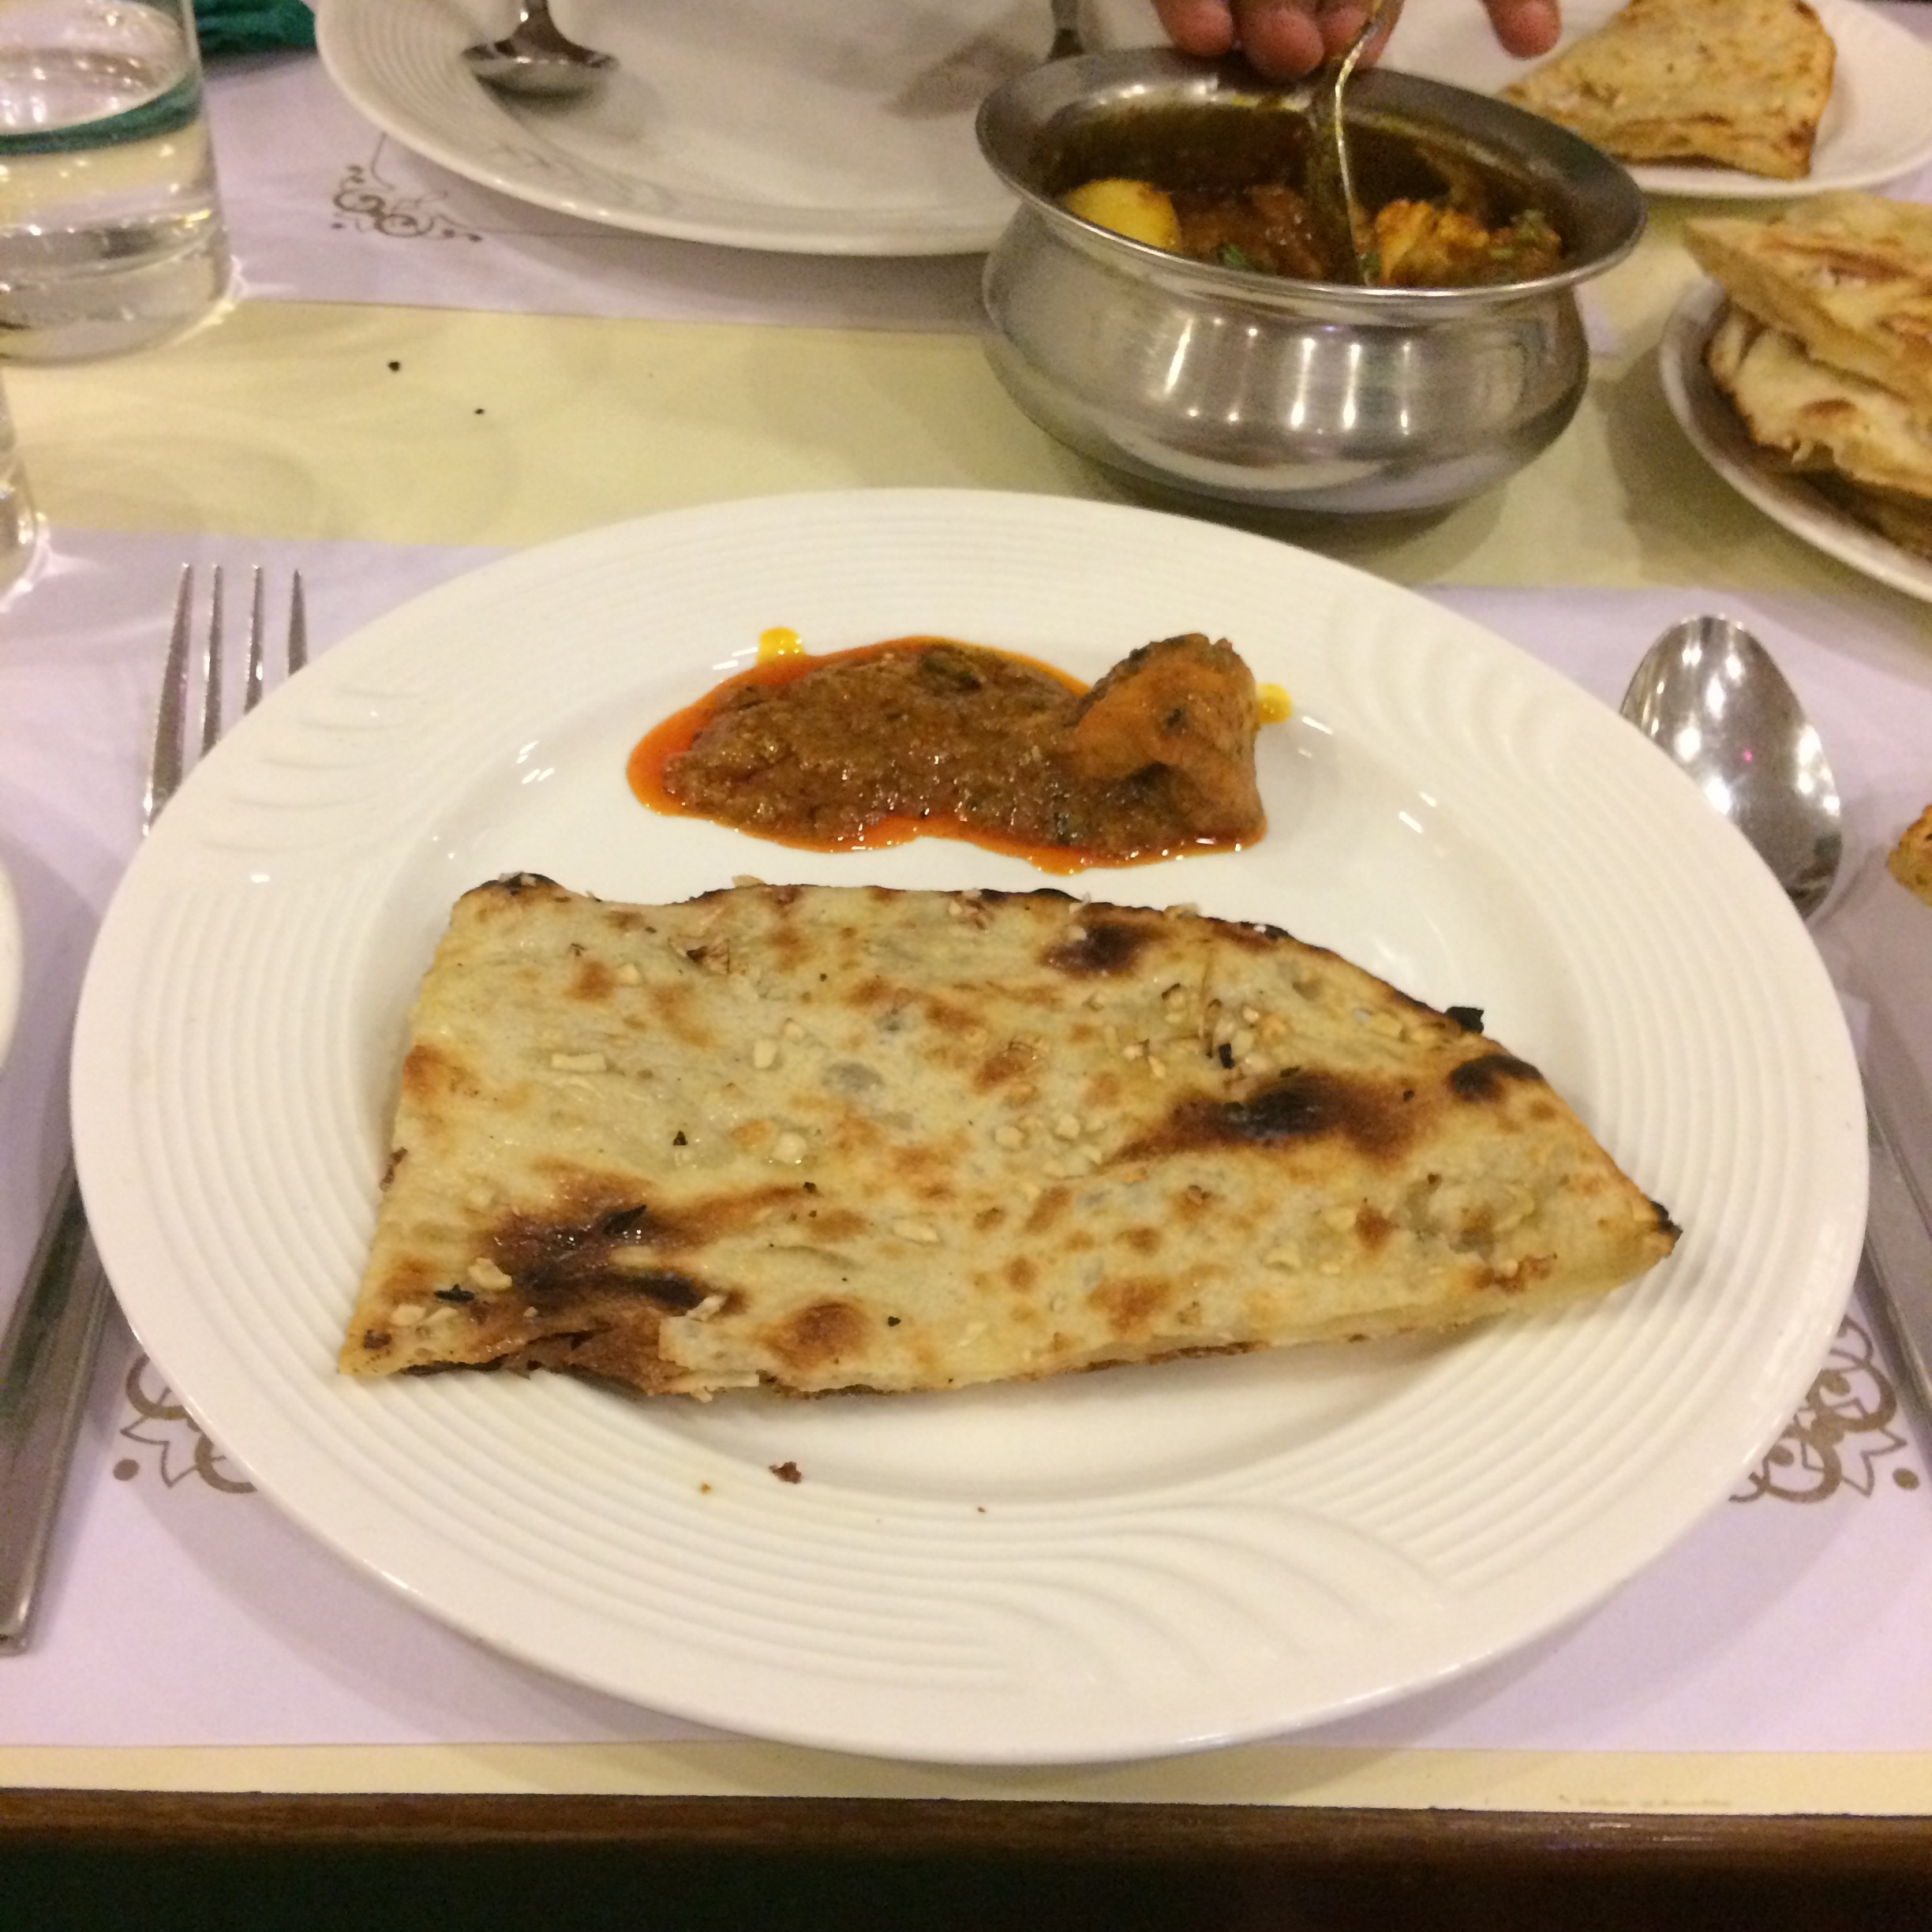 Garlic and butter Naan which is my NO.1 favorite dish out of all Indian cuisine I've tried  💖💖💖